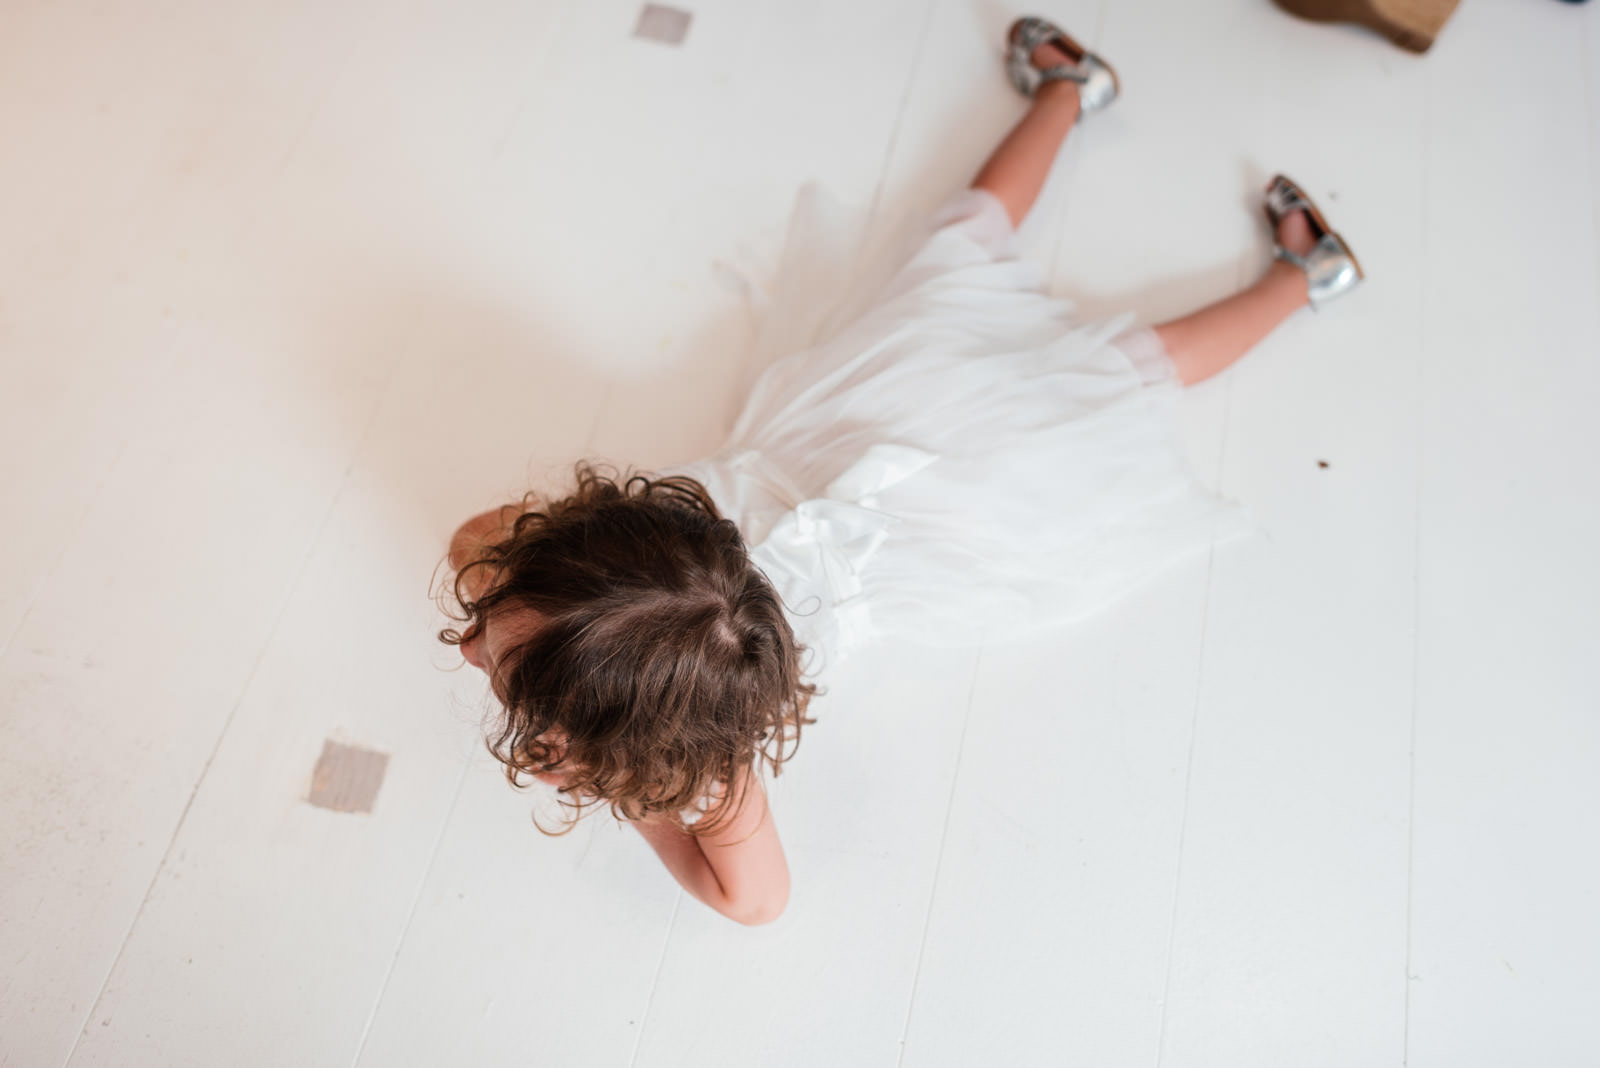 flower girl lying on the ground